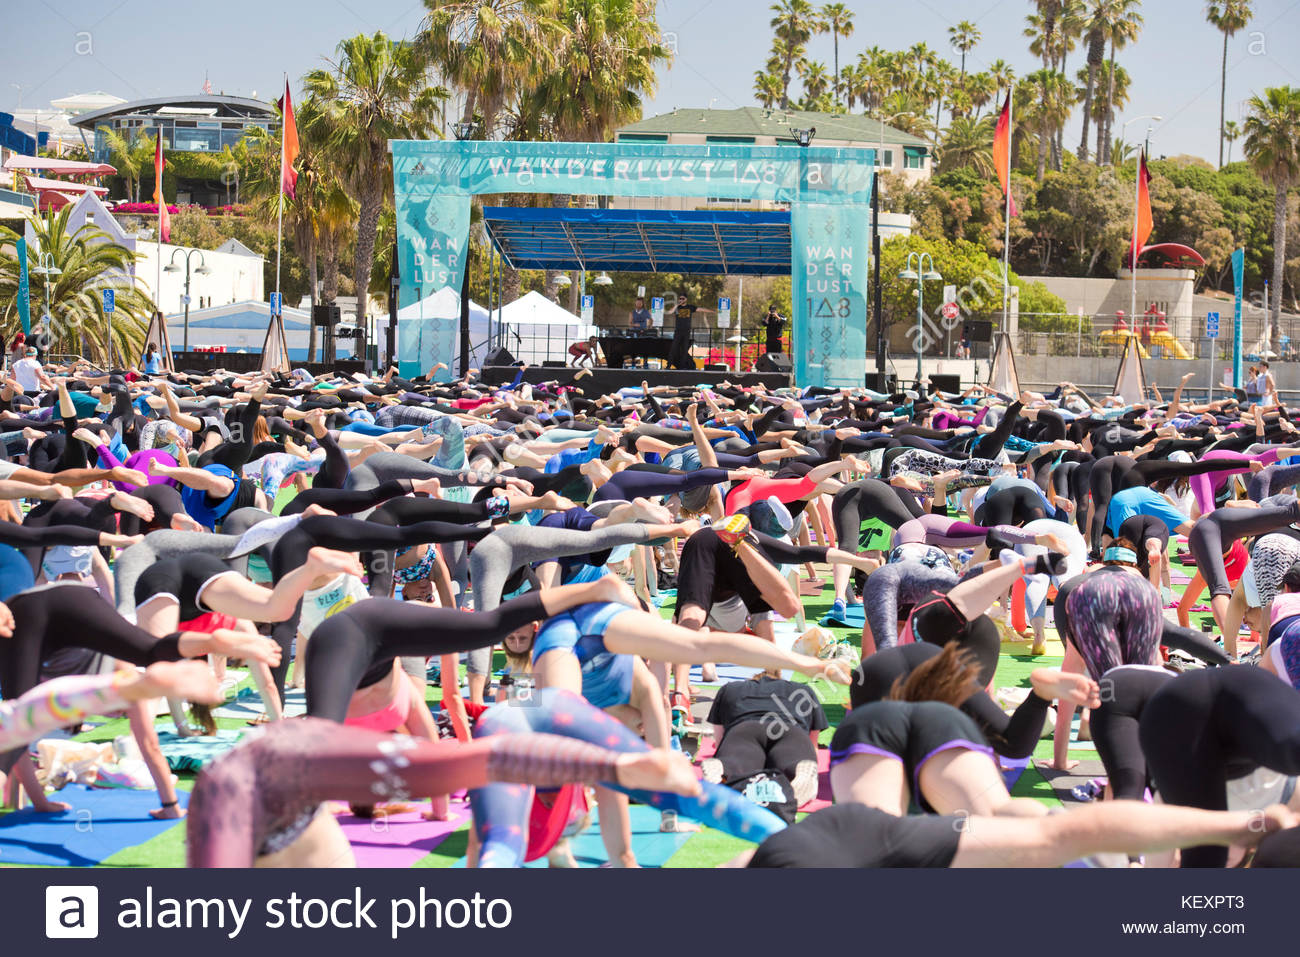 People doing one legged downward dog pose during outdoor yoga festival on Santa Monica Pier in Santa Monica, California, - Stock Image